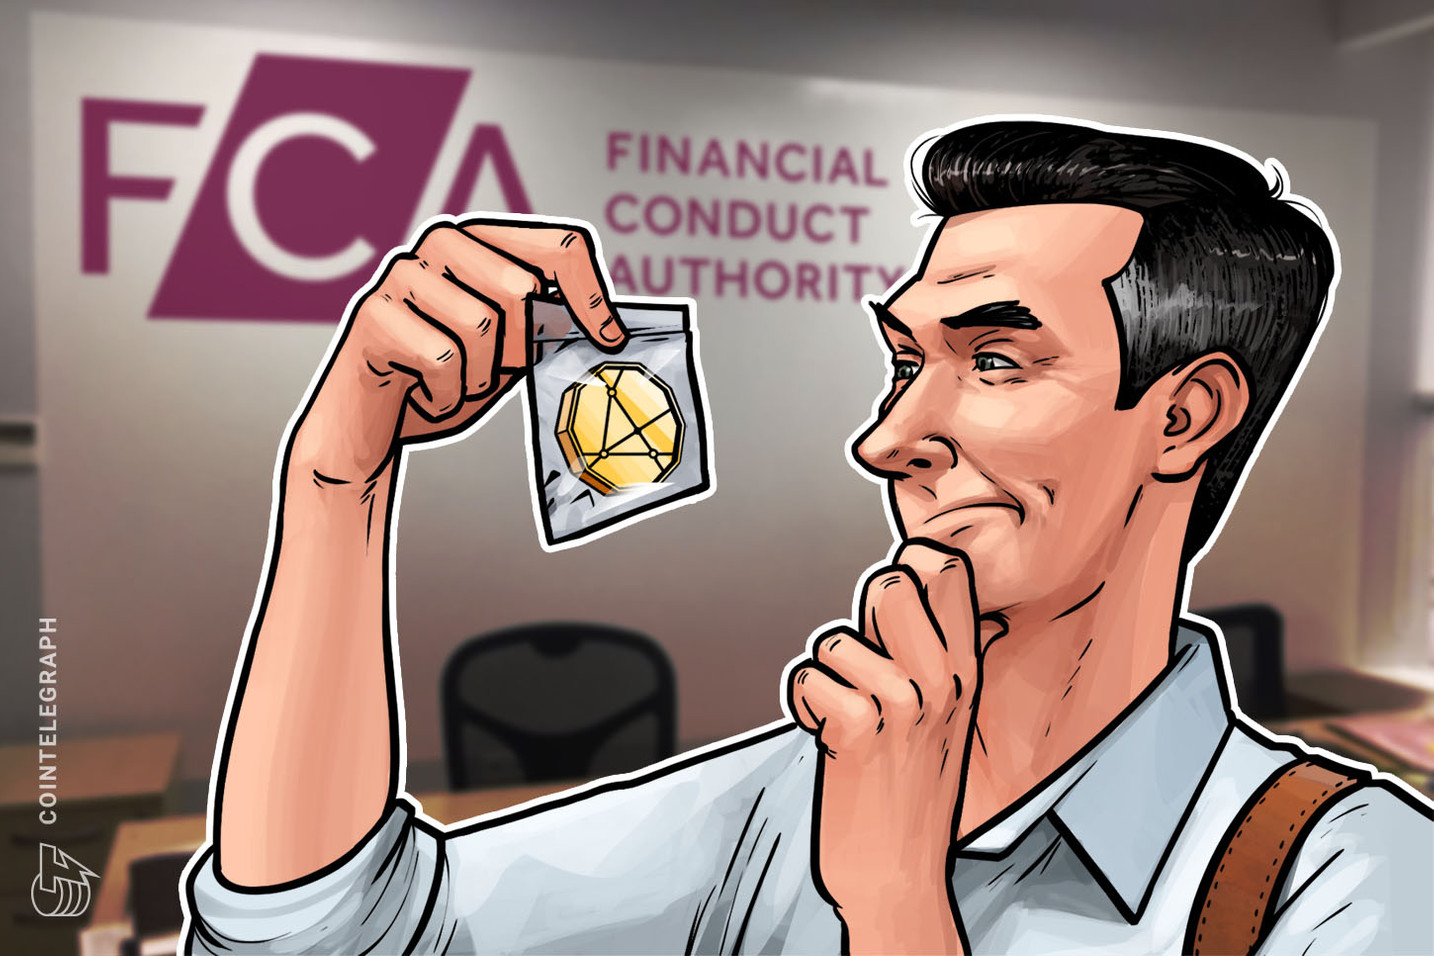 UK Financial Watchdog Seeks Cryptocurrency Expert to Address EU Regulations